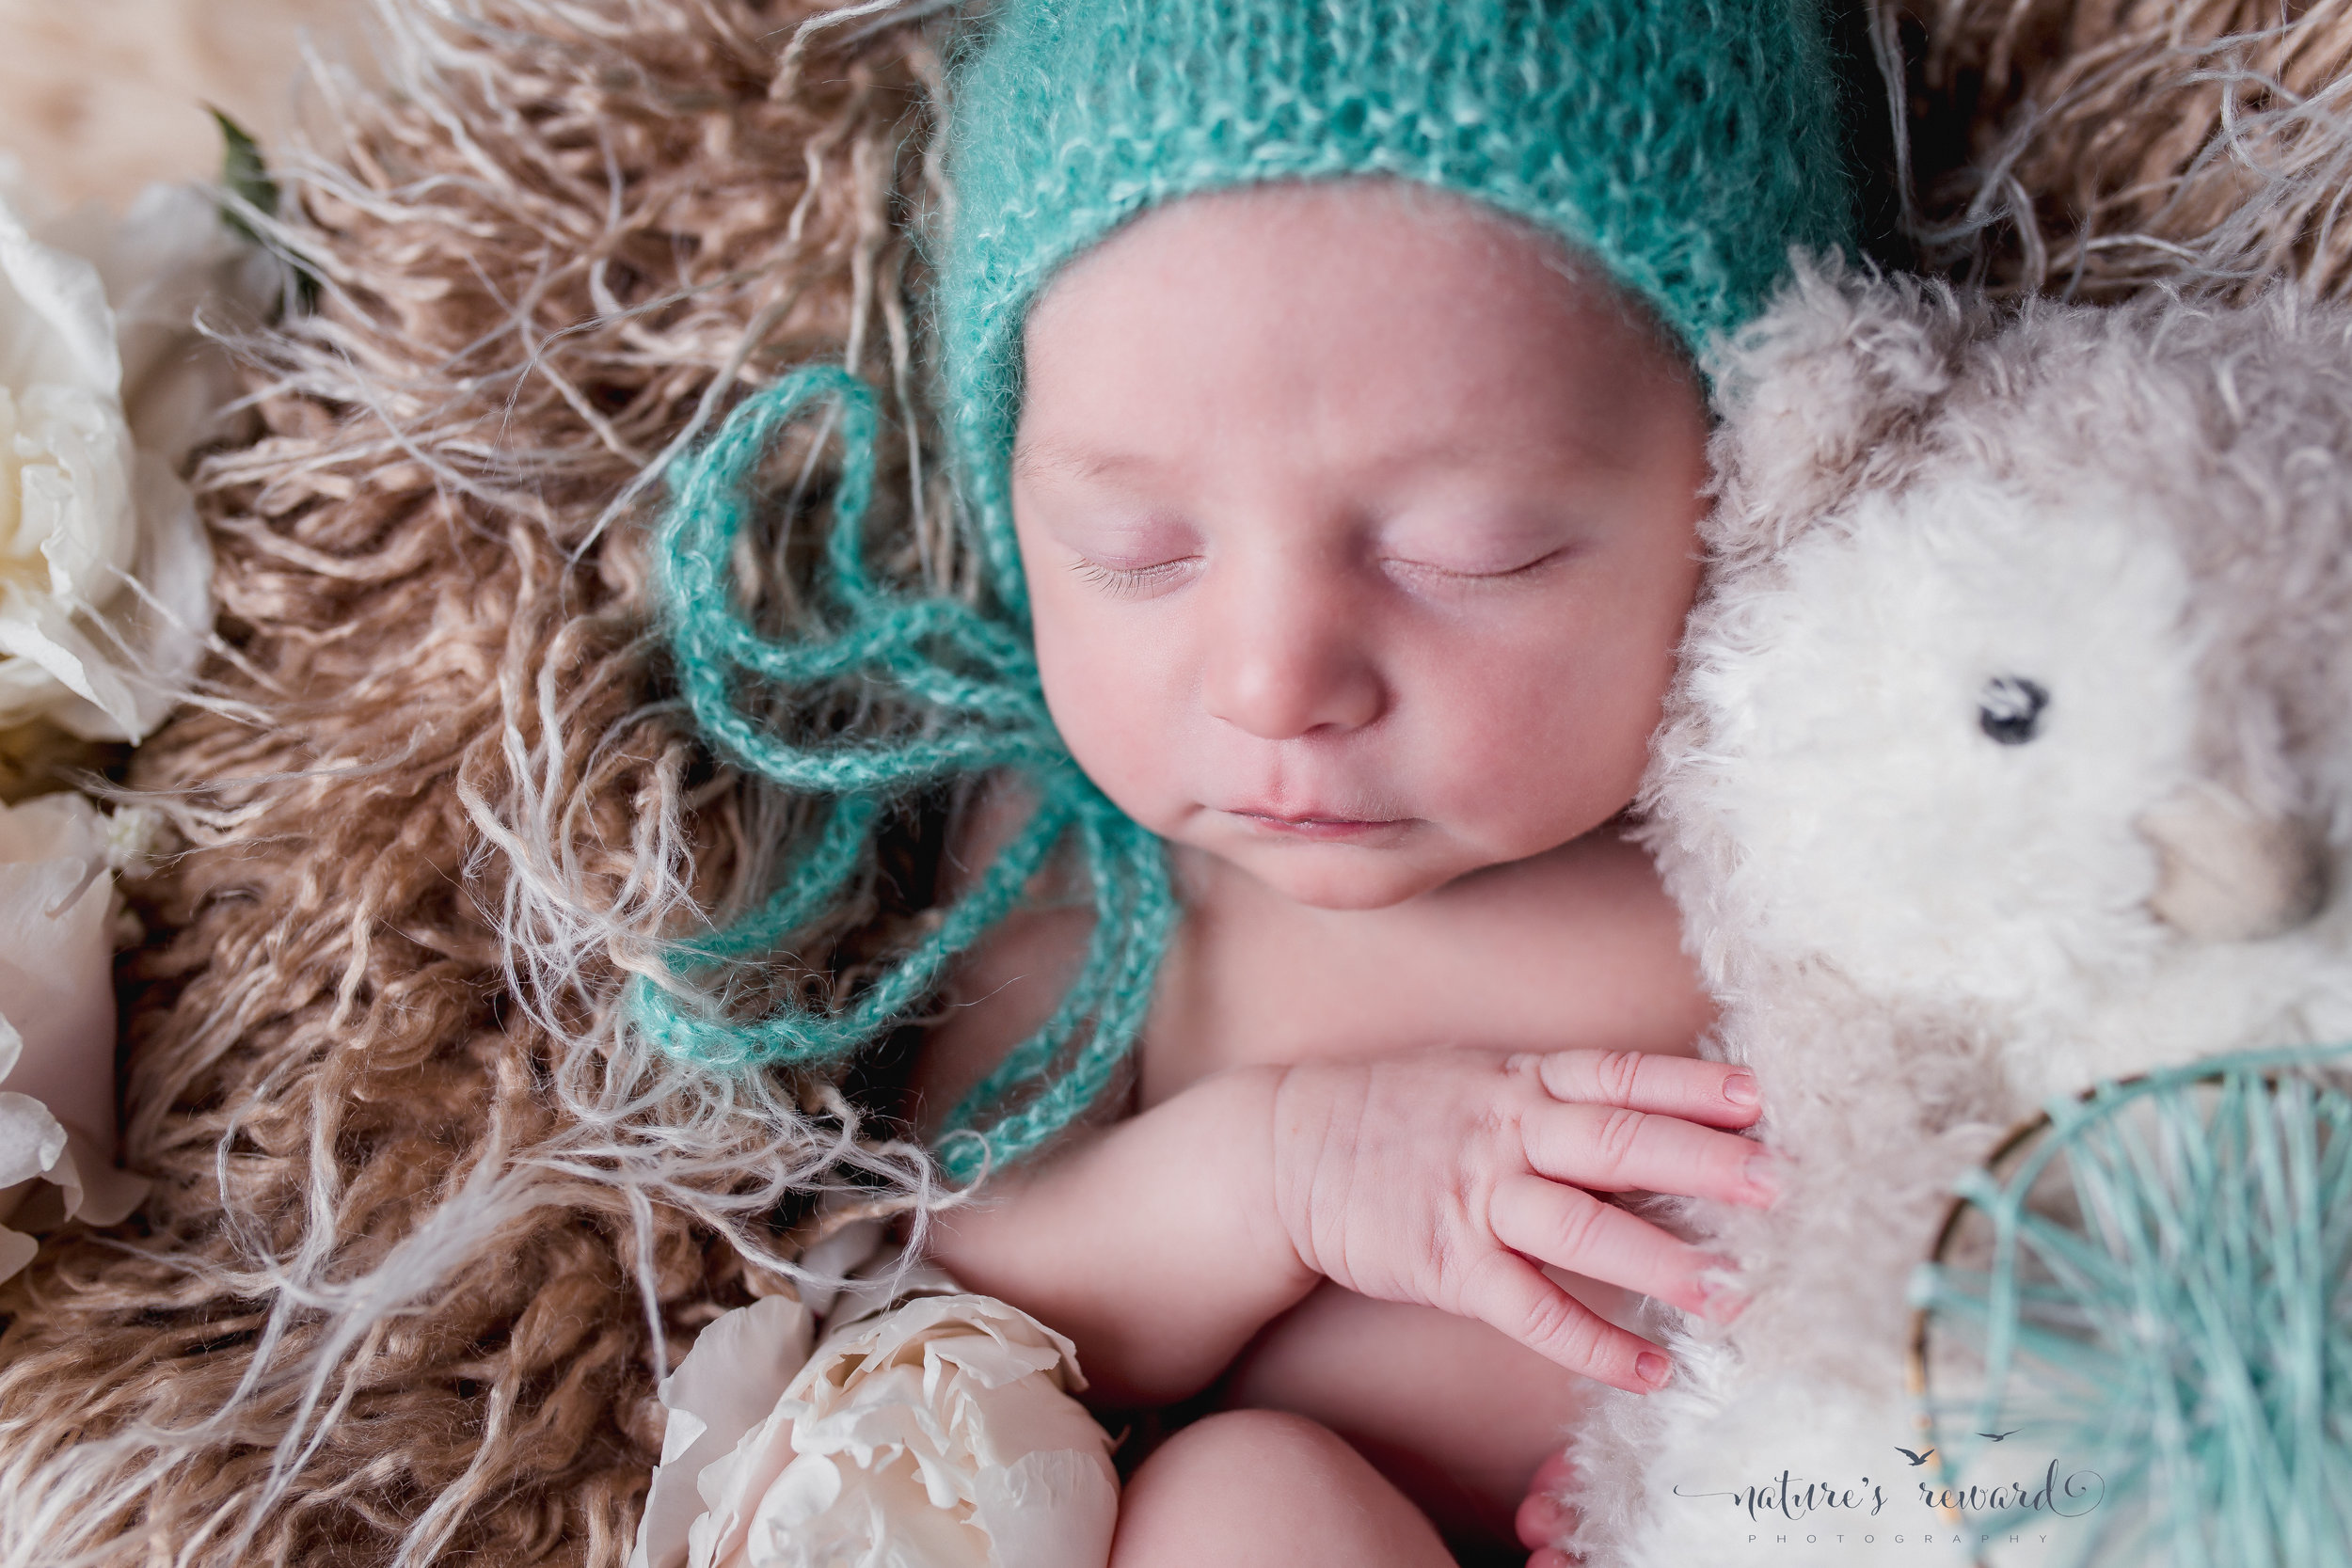 Newborn baby portrait in whites and soft teal, laying on a bed of fur holding her owl.A Portrait By Nature's Reward Photography, a San Bernardino Family, Child, and Newborn Baby Photographer.